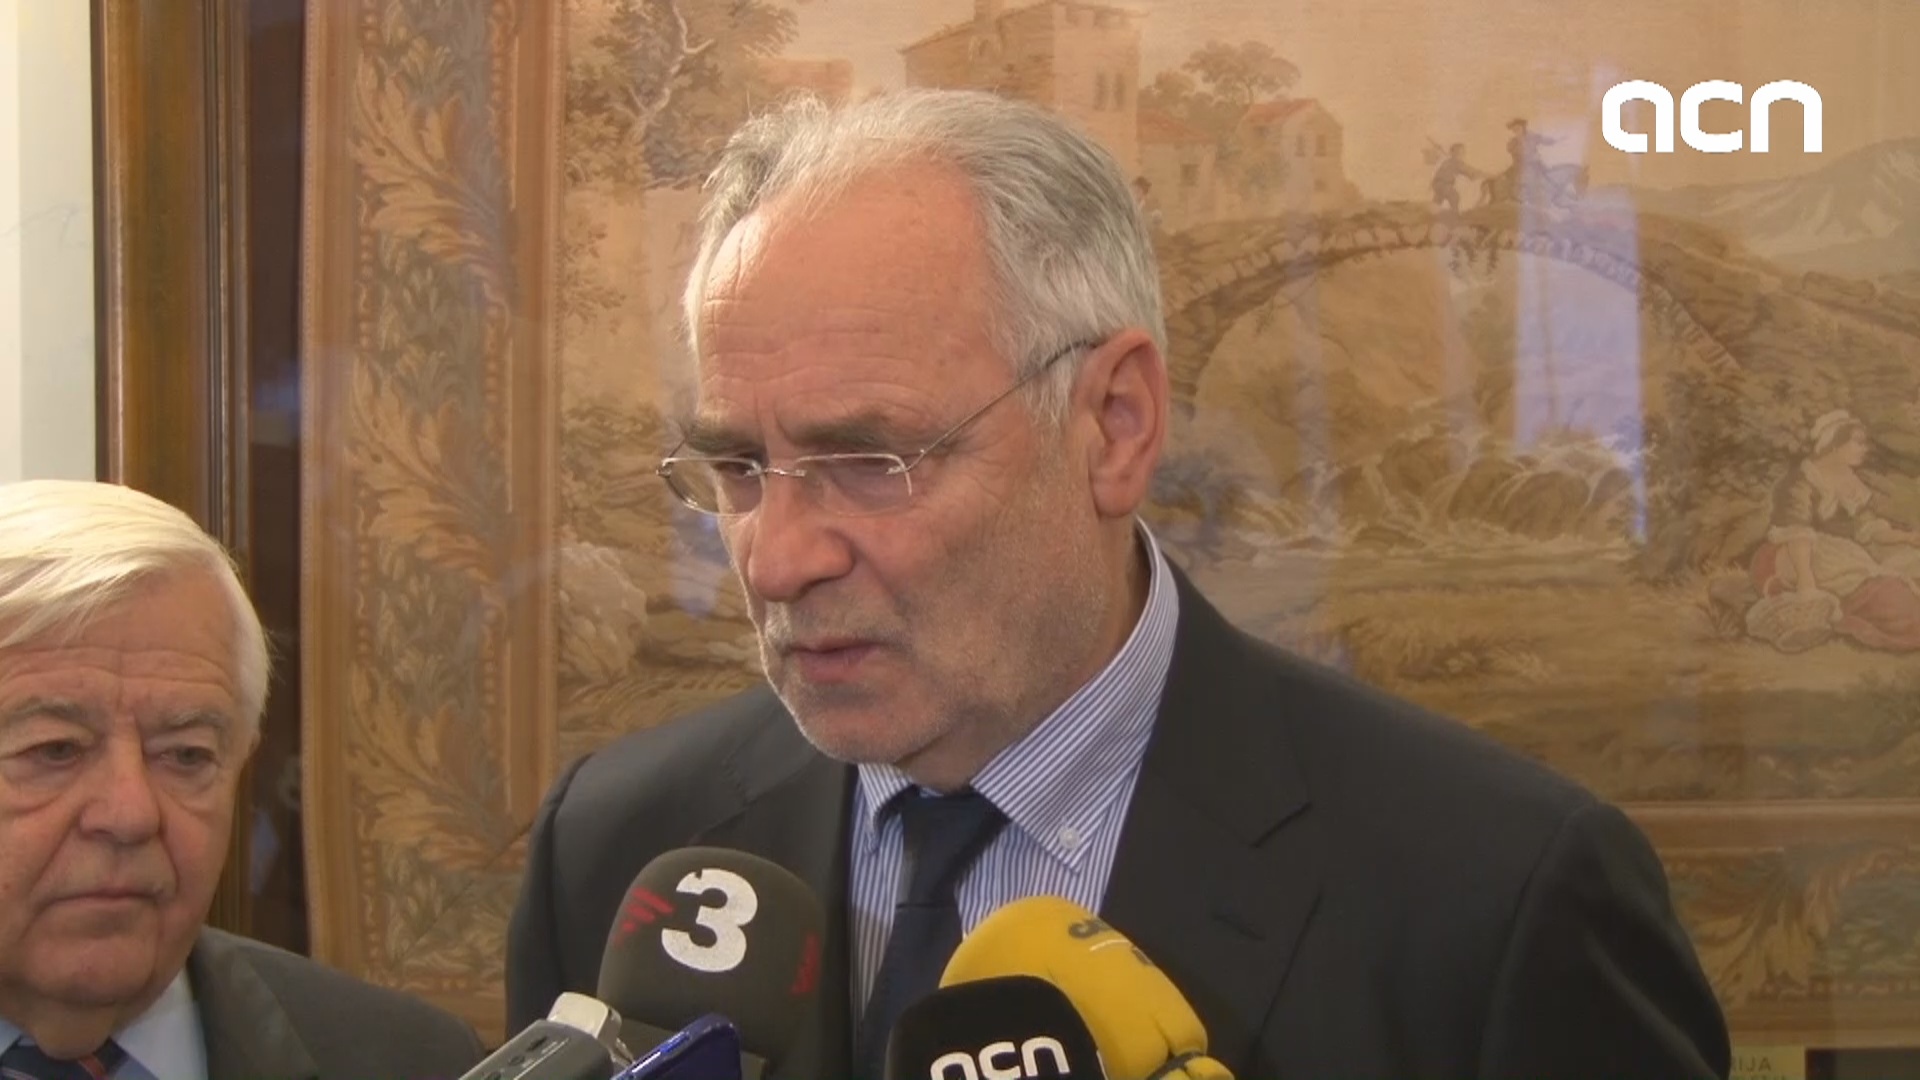 MEP and former minister Ivo Vajgl speaks of the Catalan issue from Slovenian perspective